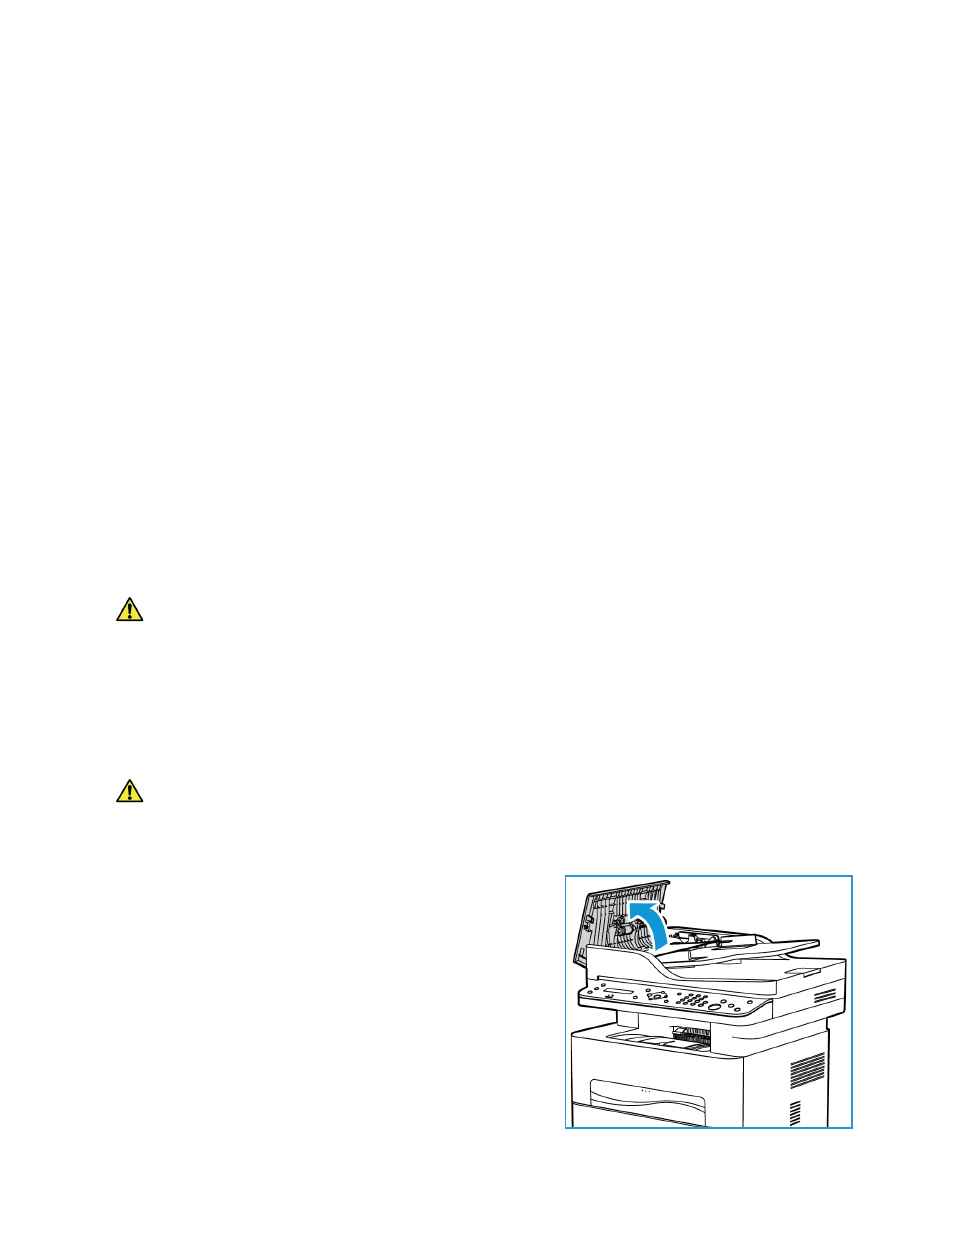 Xerox WorkCentre 3225 User's Manual | Page 230 - Free PDF